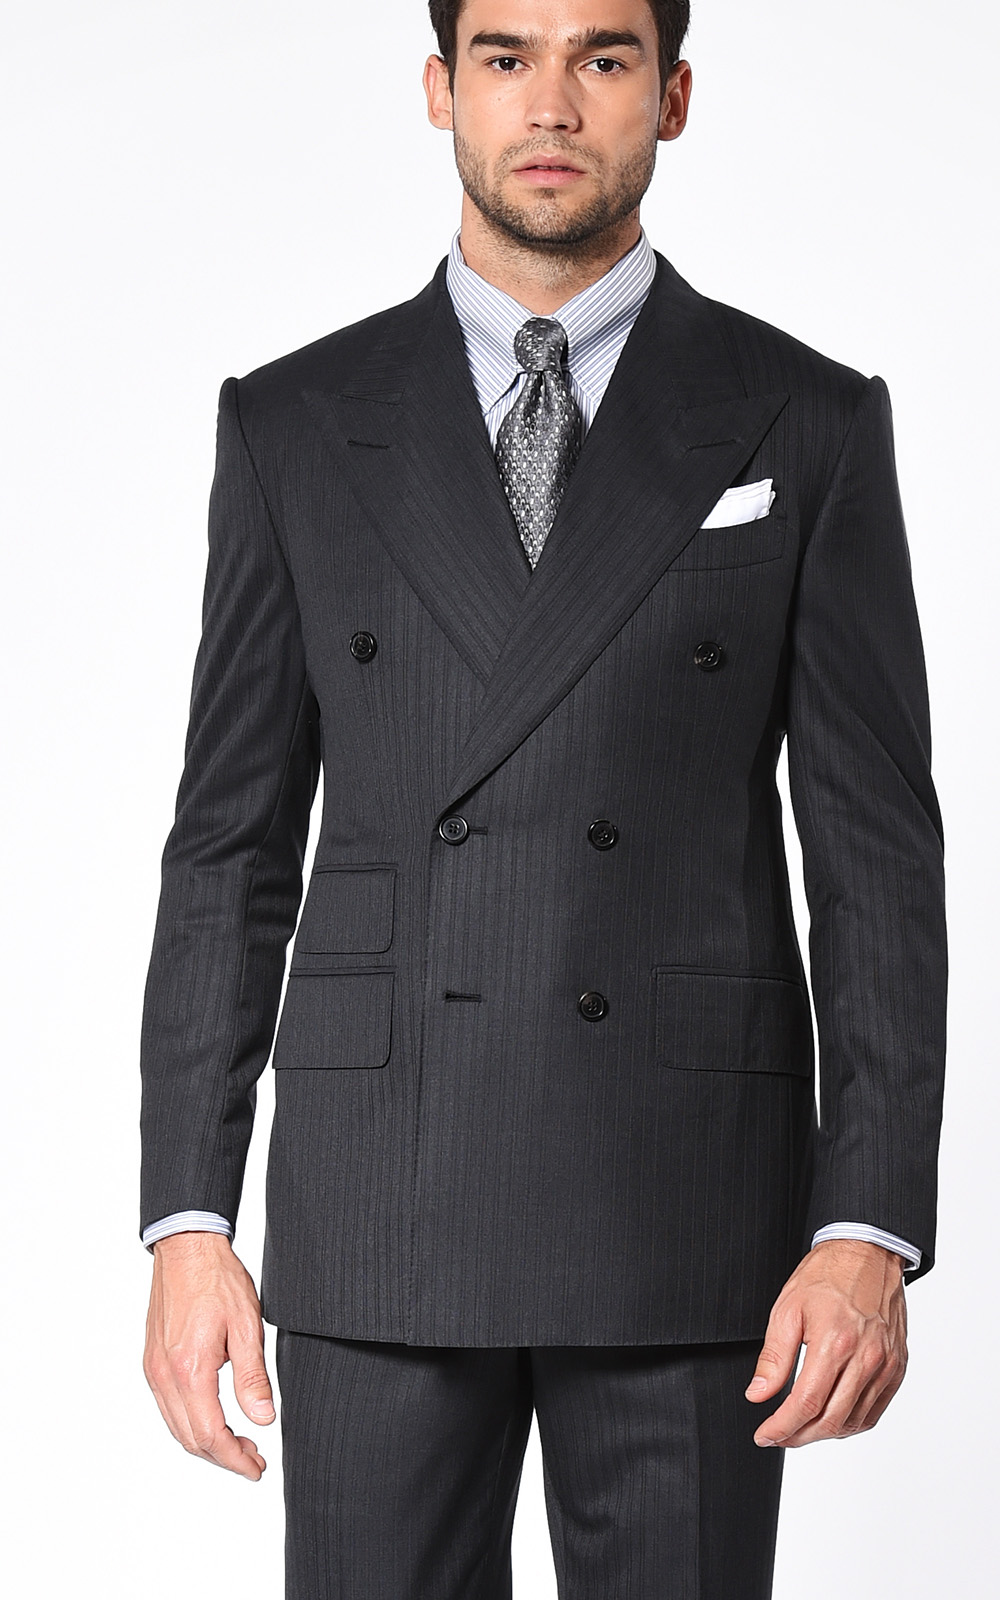 Charcoal Overlay Stripe Double Breasted Signature Bespoke Suit